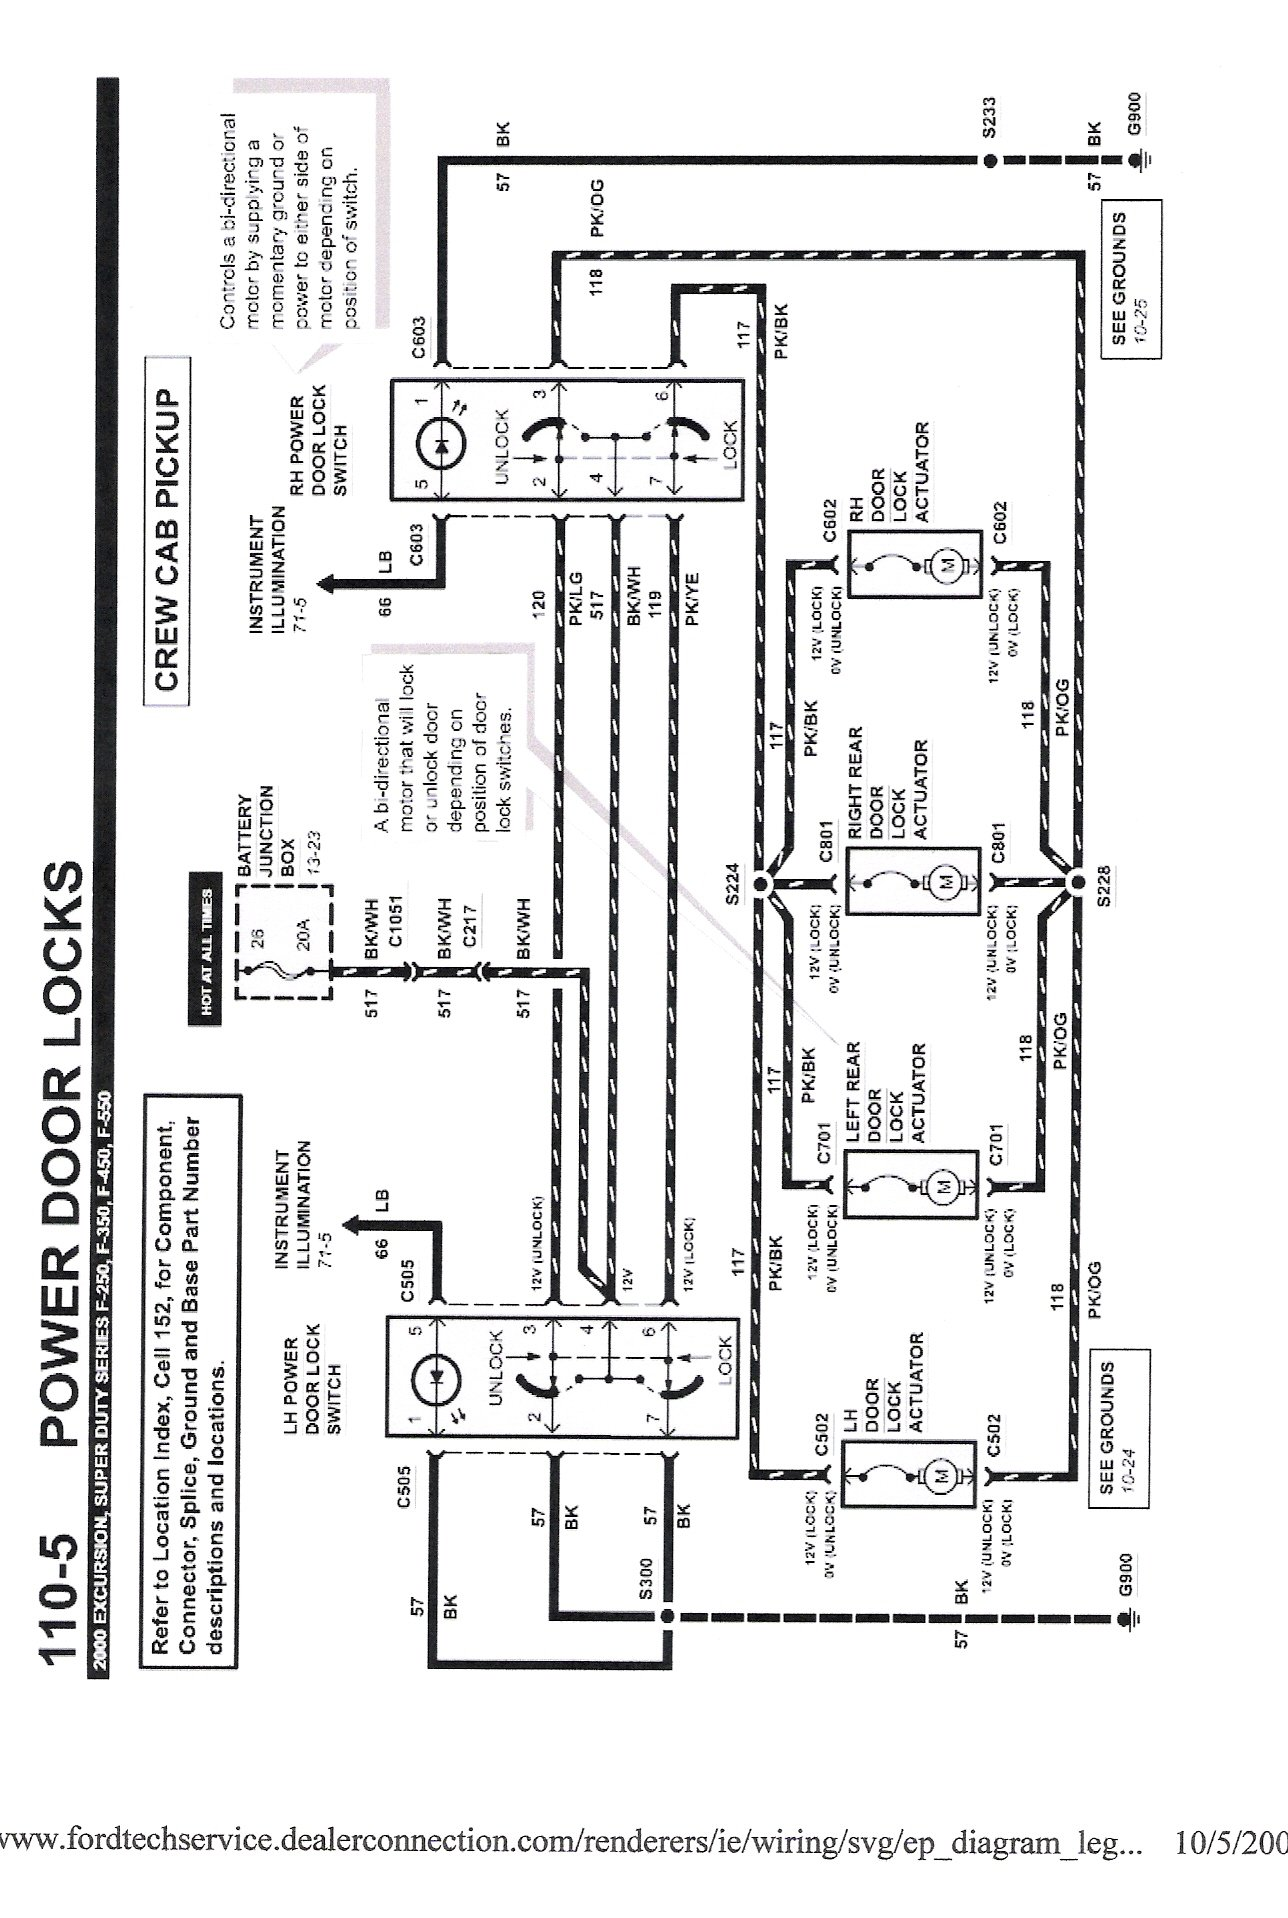 1989 ford ranger door lock wiring diagram ford f350 door lock wiring diagram #3